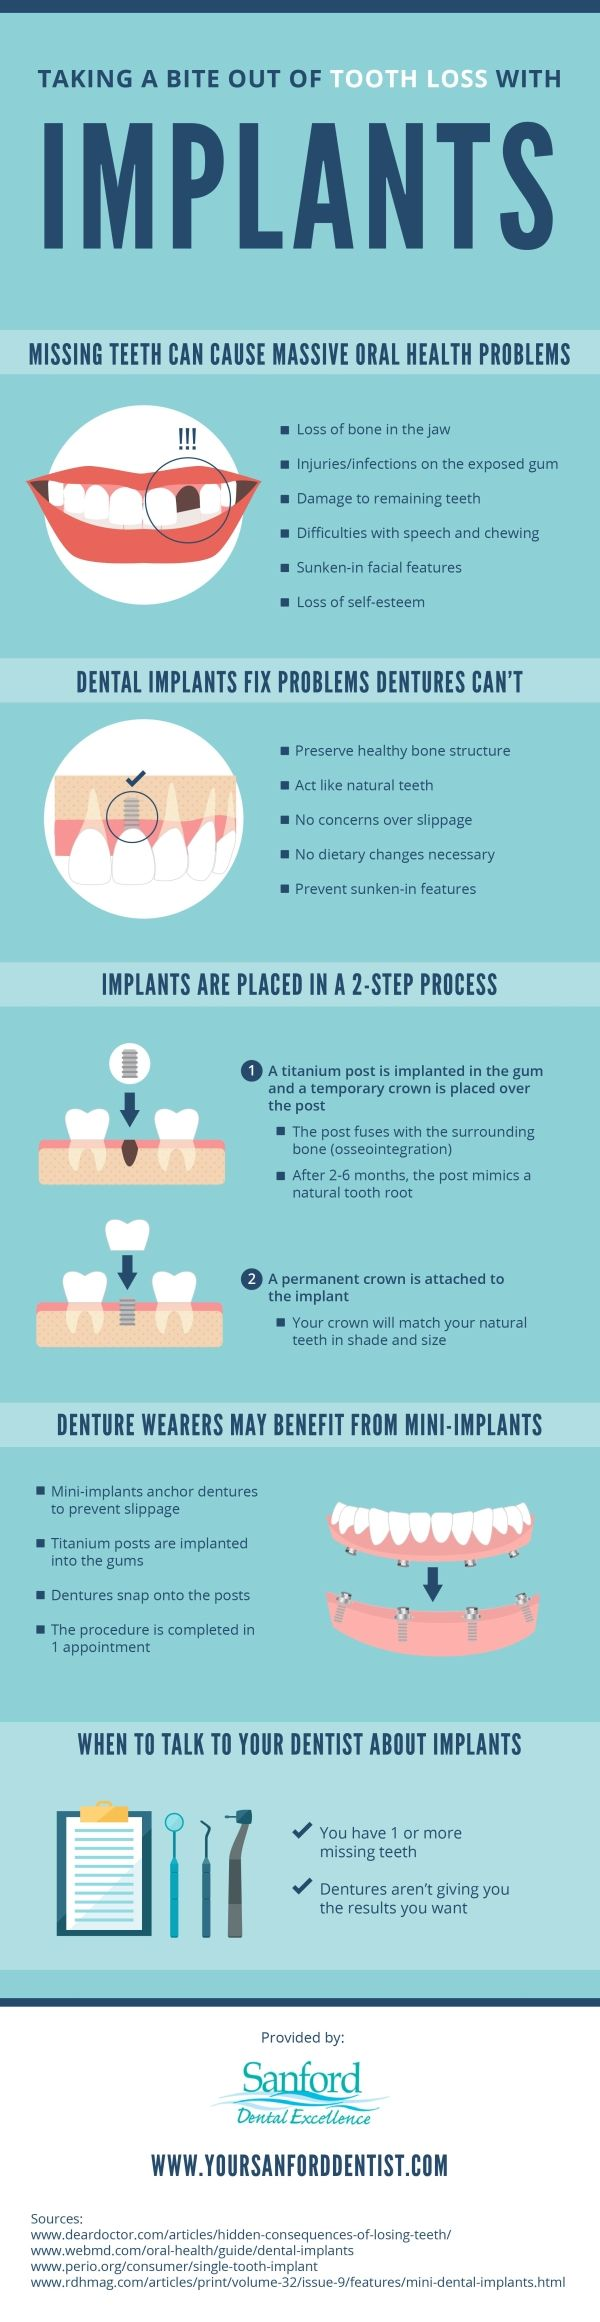 Dentures can be helpful, but they might not be exactly what you're looking for. Look through this infographic to find out if dental implants may be a better choice for your needs! #infographic #datavisualization #dental #implant